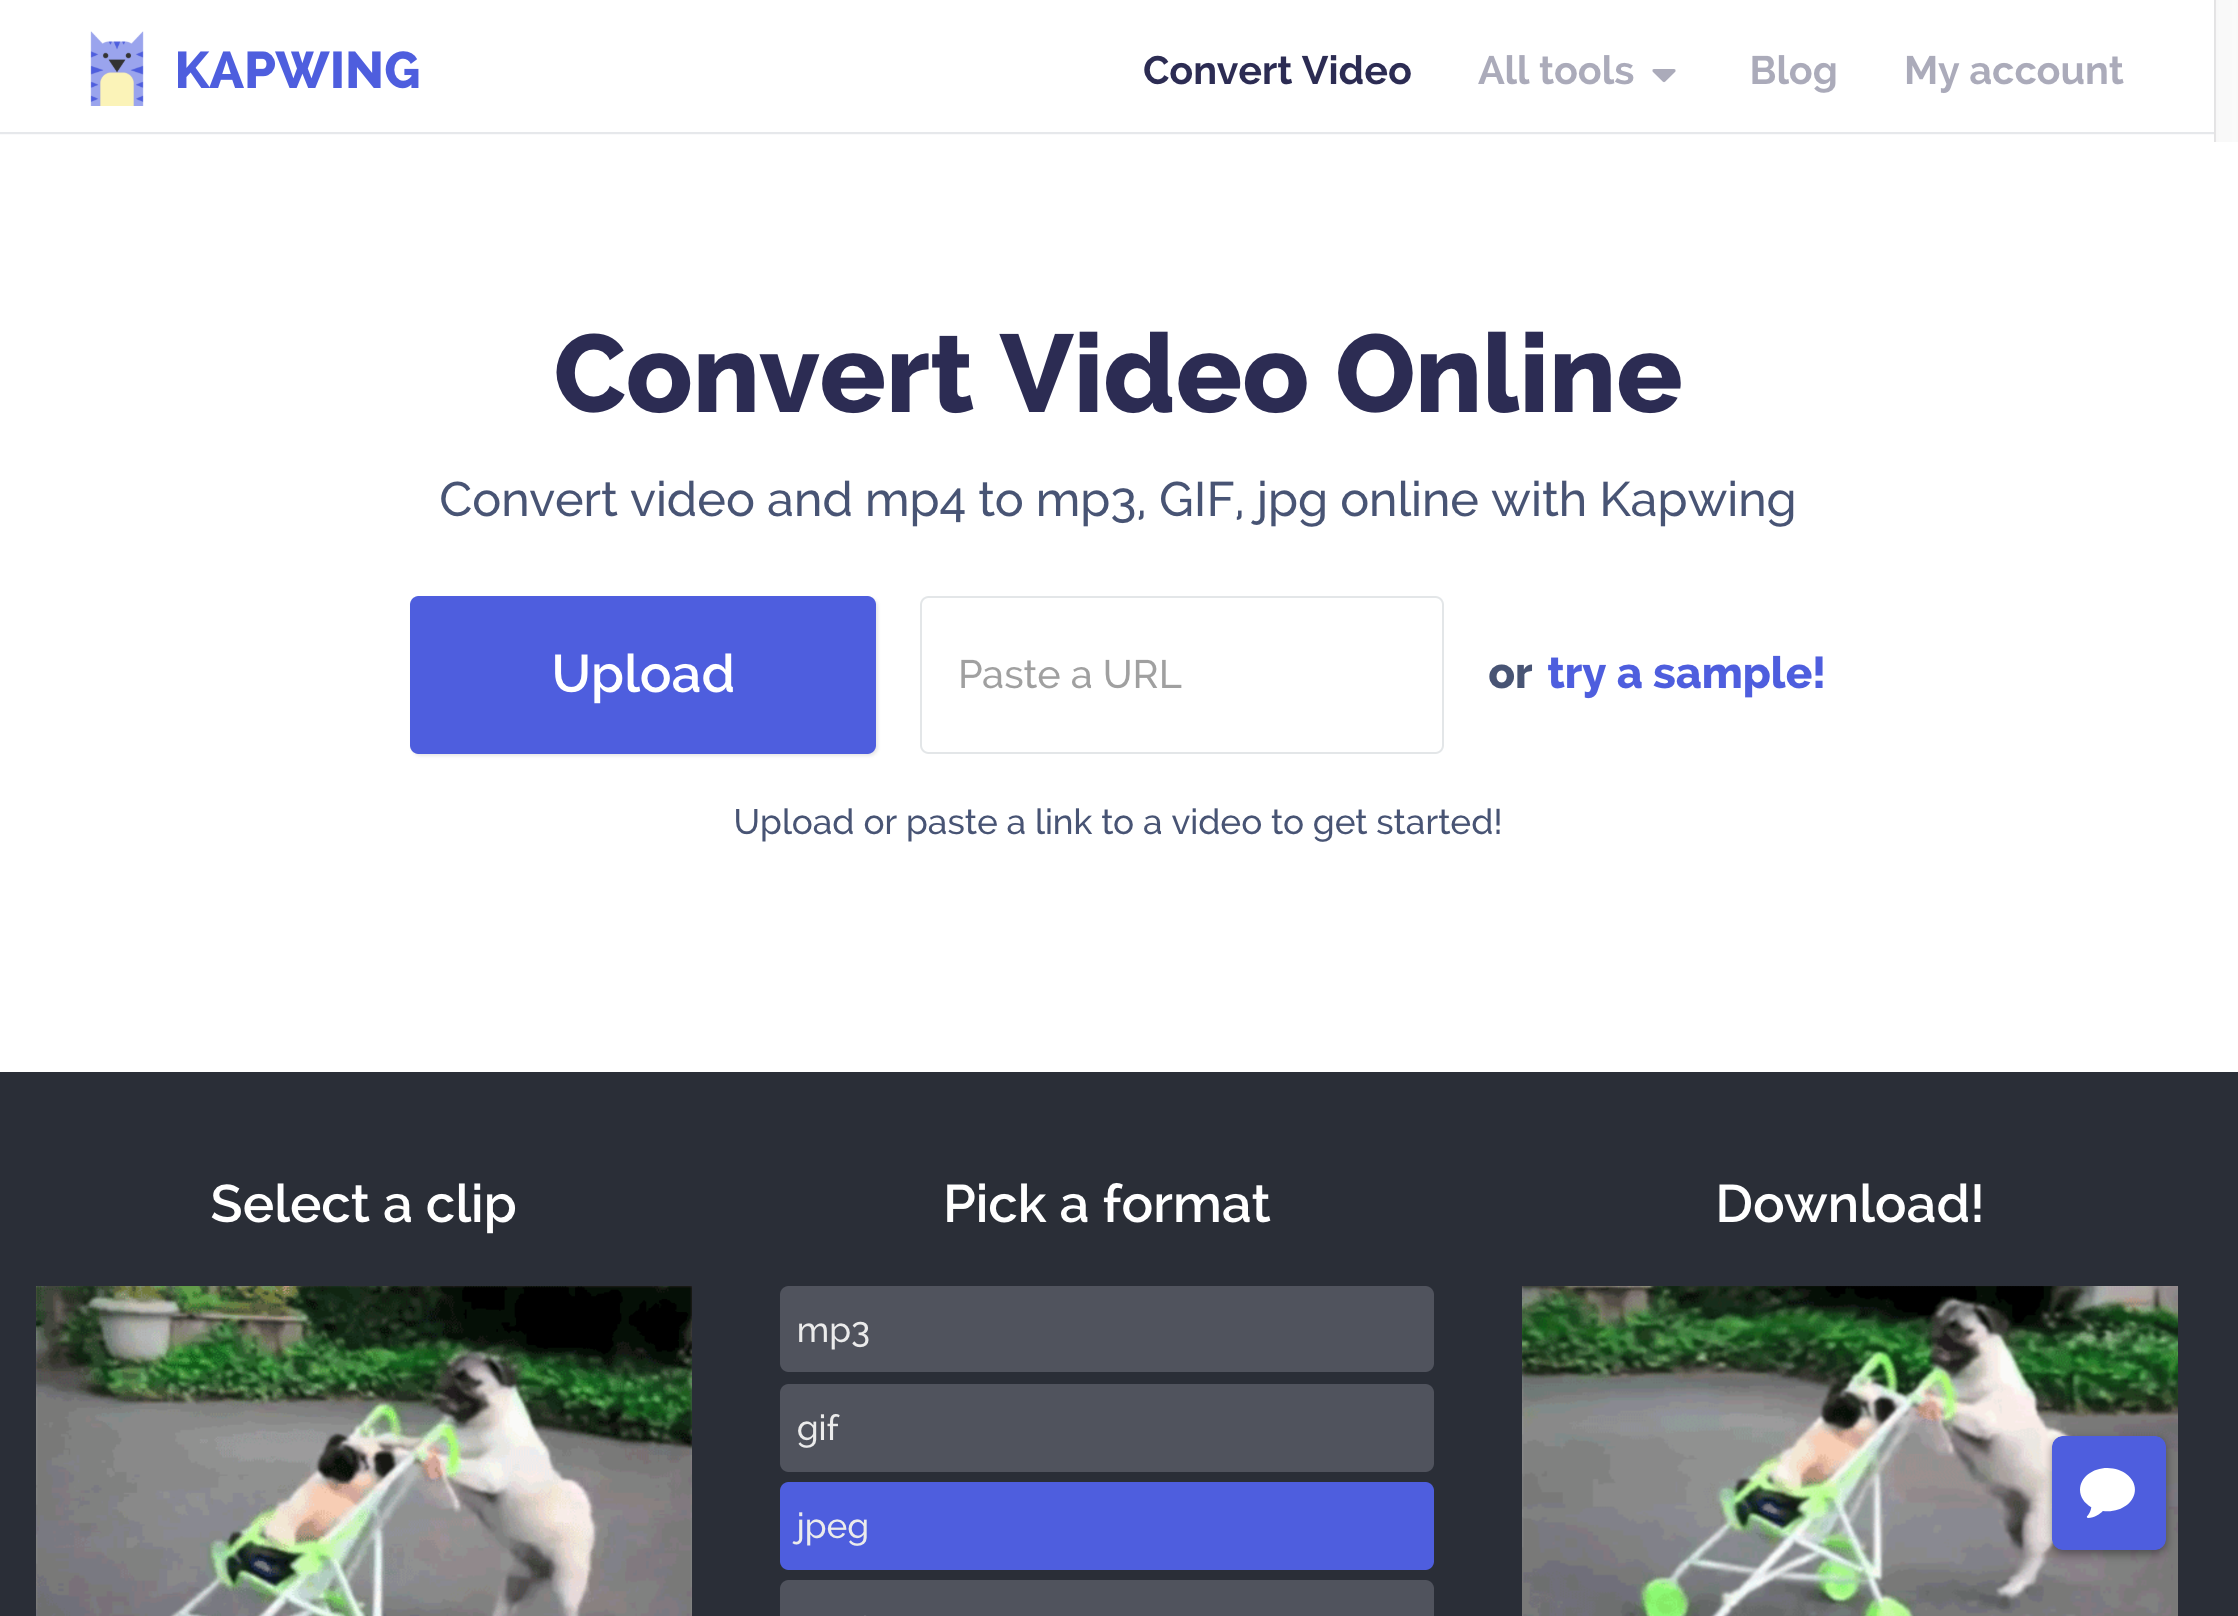 A screenshot of the Kapwing Convert Video homepage.